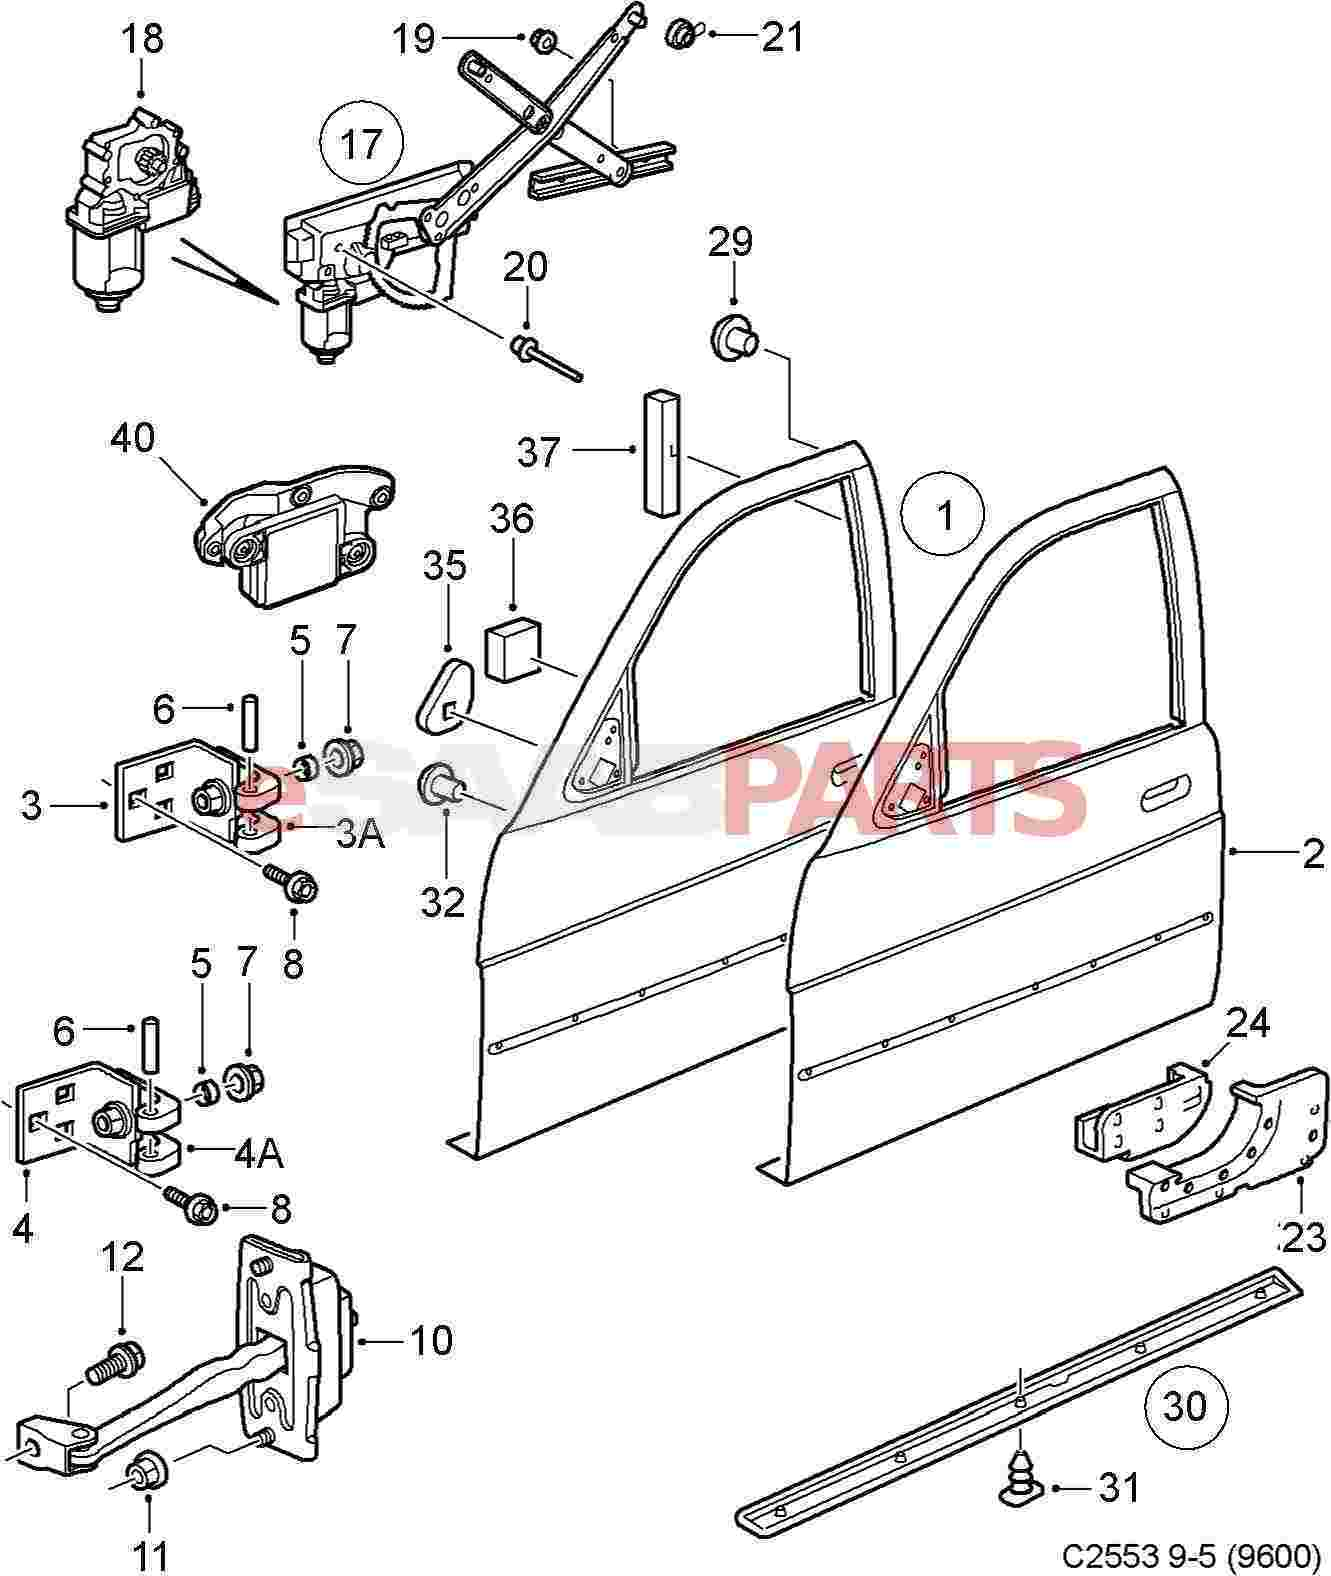 3 Rear Window Regulator Saab Window Regulator